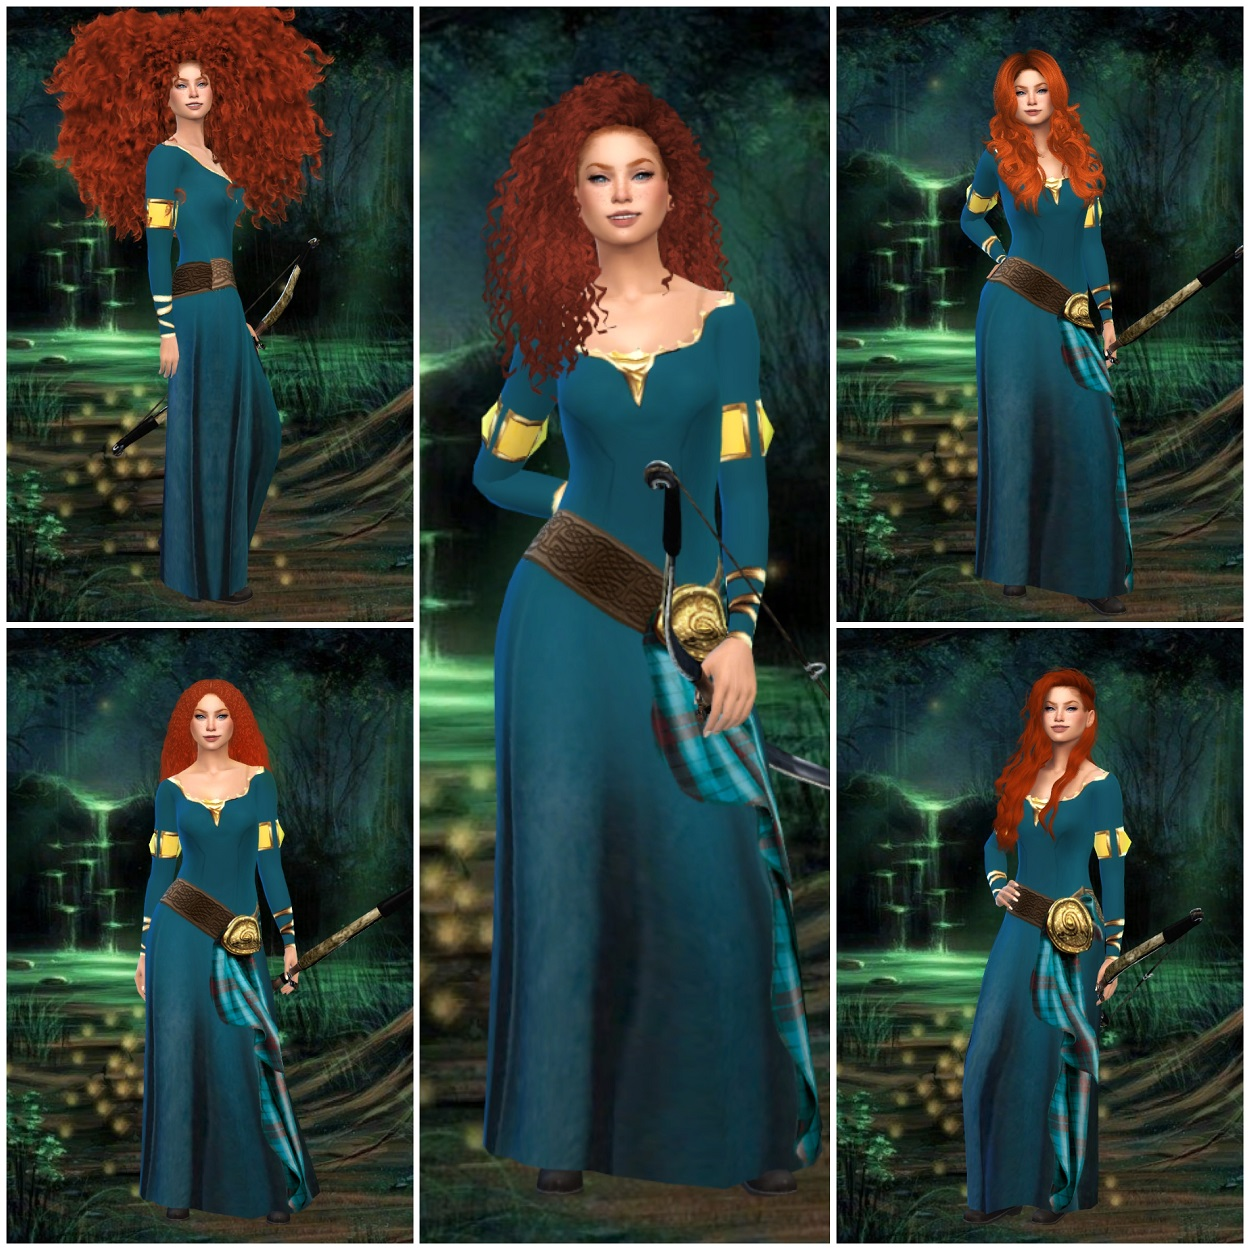 The Sims 4 I Disney – Brave – Merida 🏹